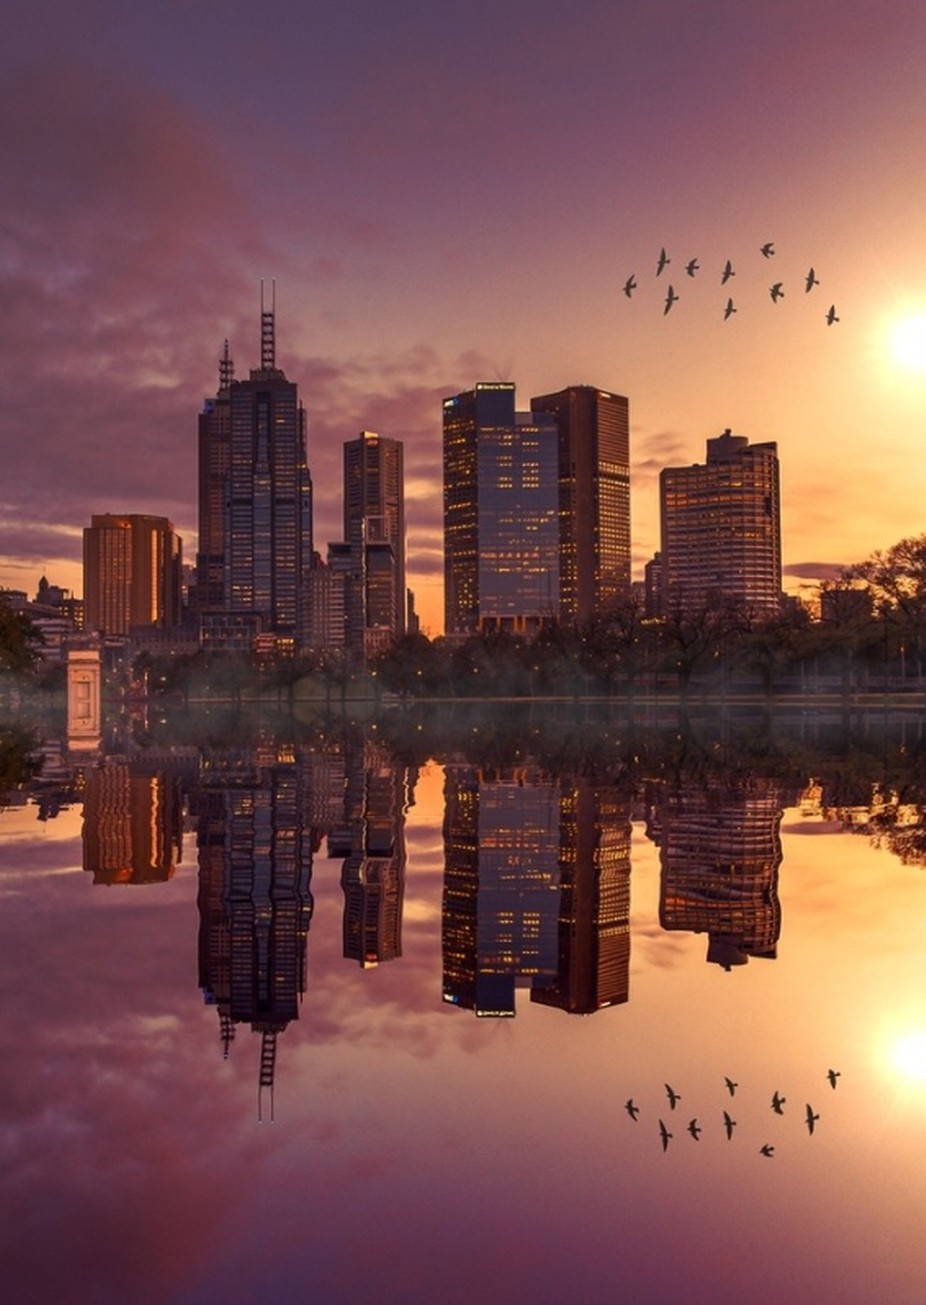 Reflections of Melbourne by JRosewarne - My City Photo Contest